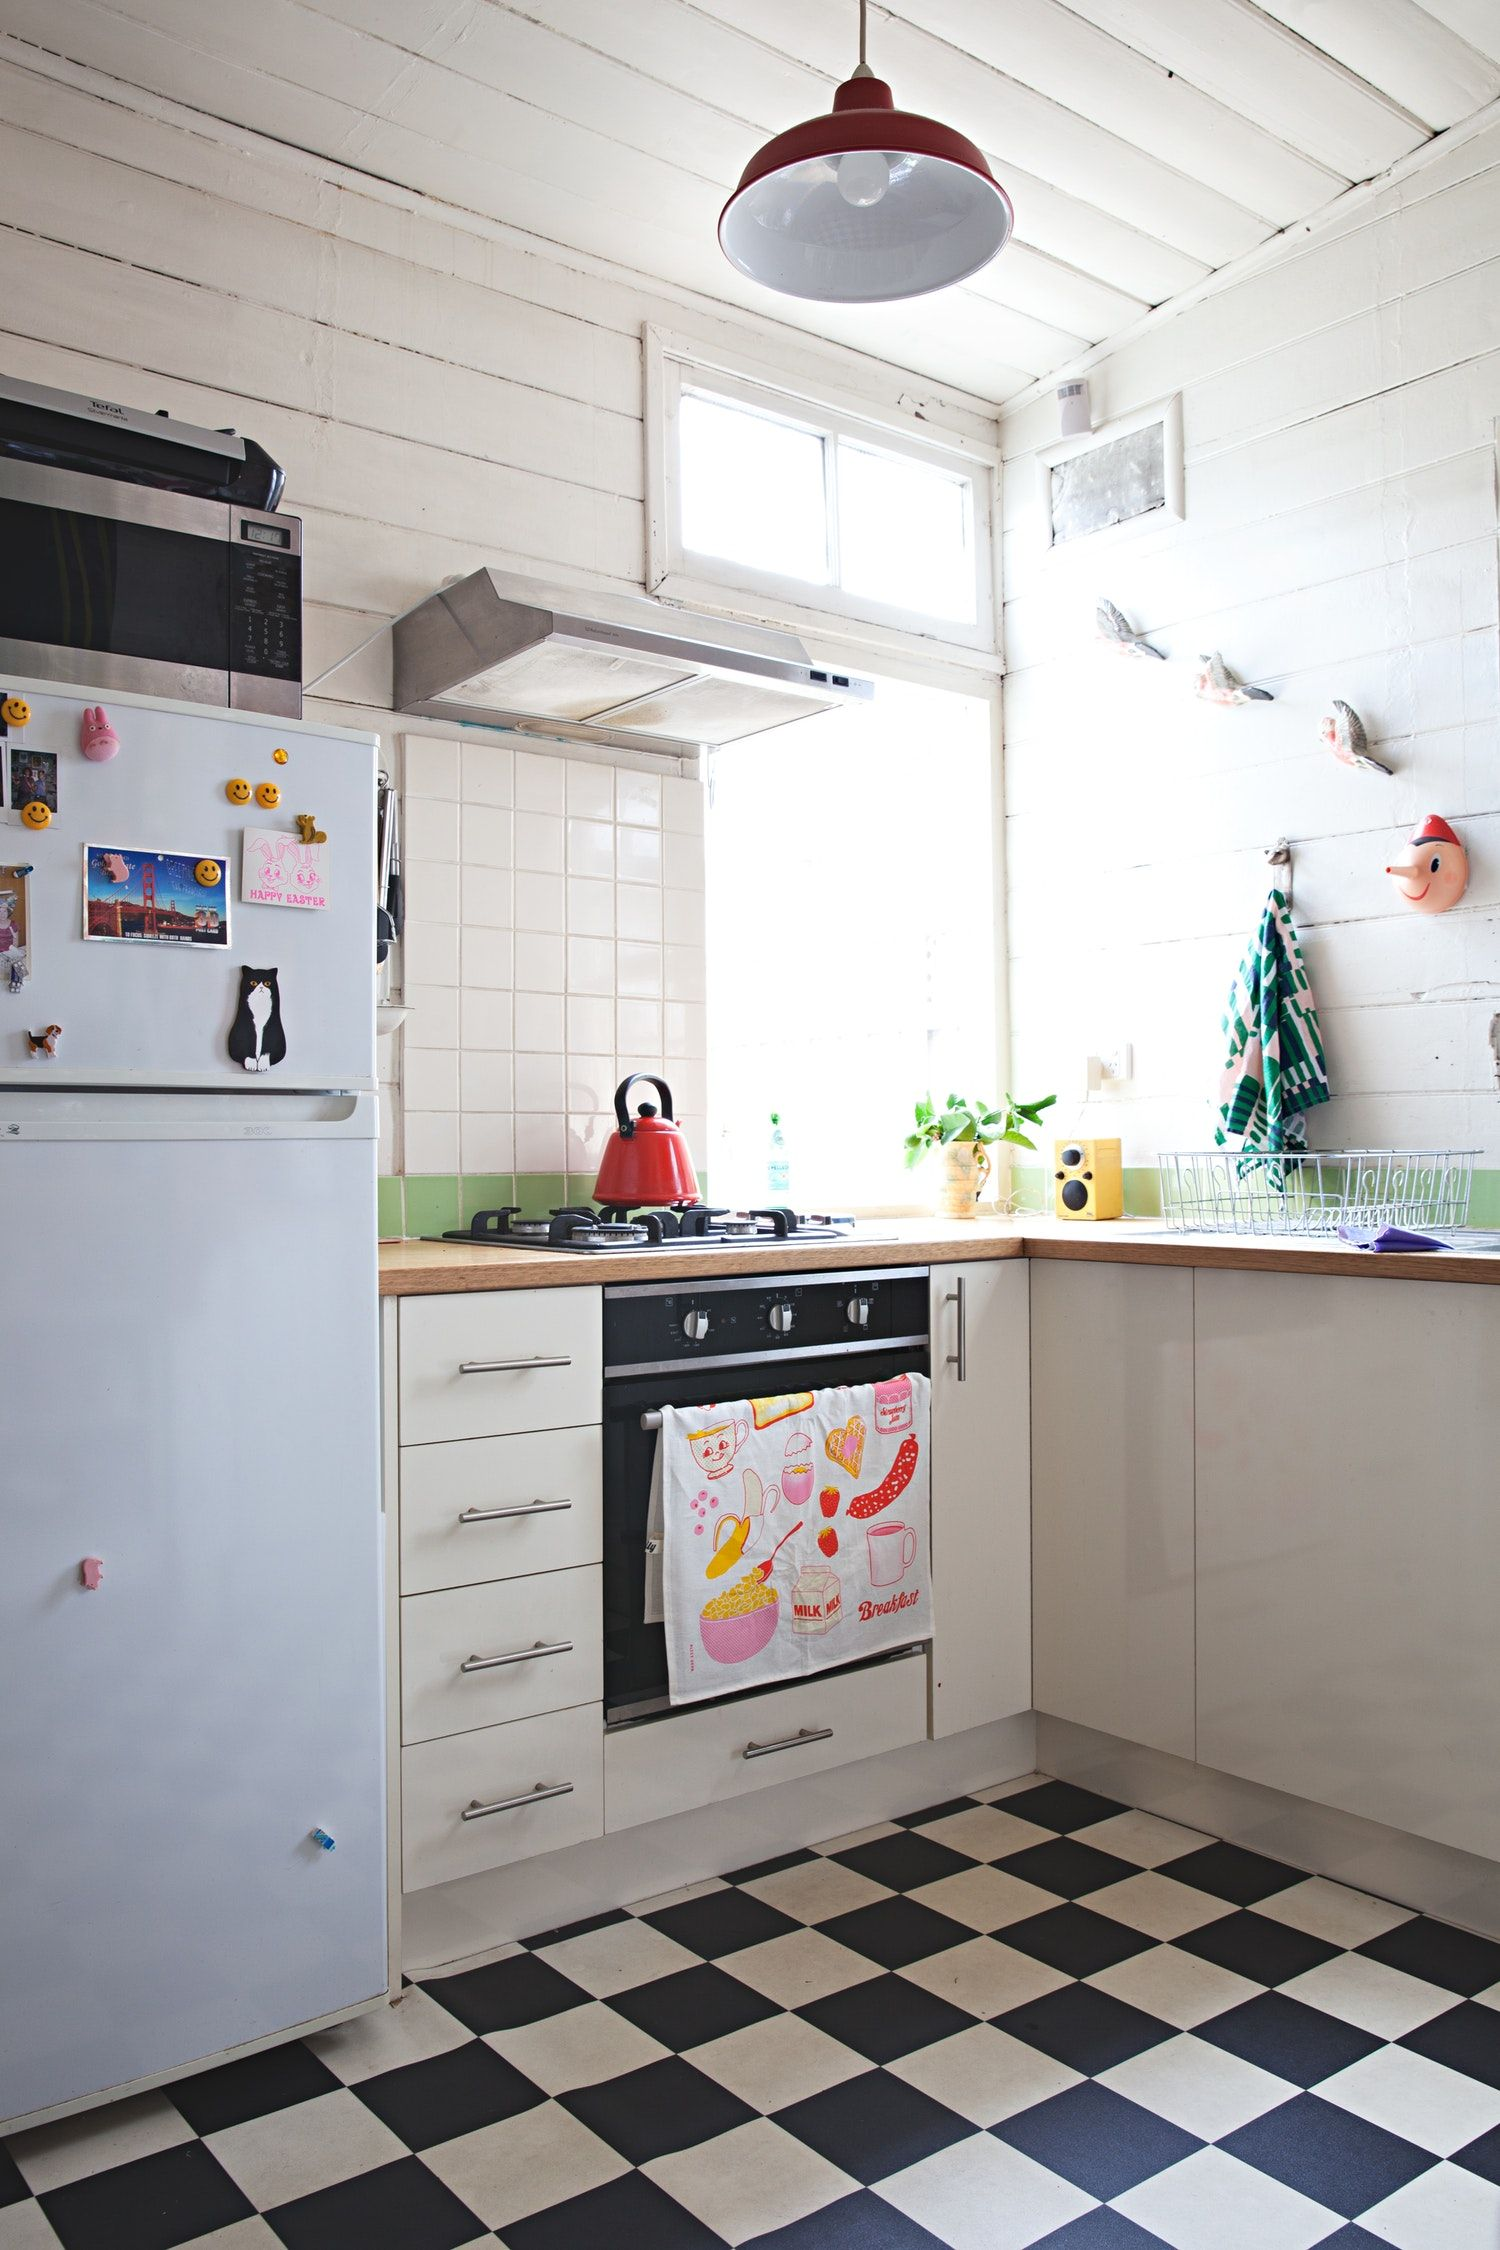 The 21 Best Small Kitchen Ideas of All Time | Kitchens, Spaces and ...